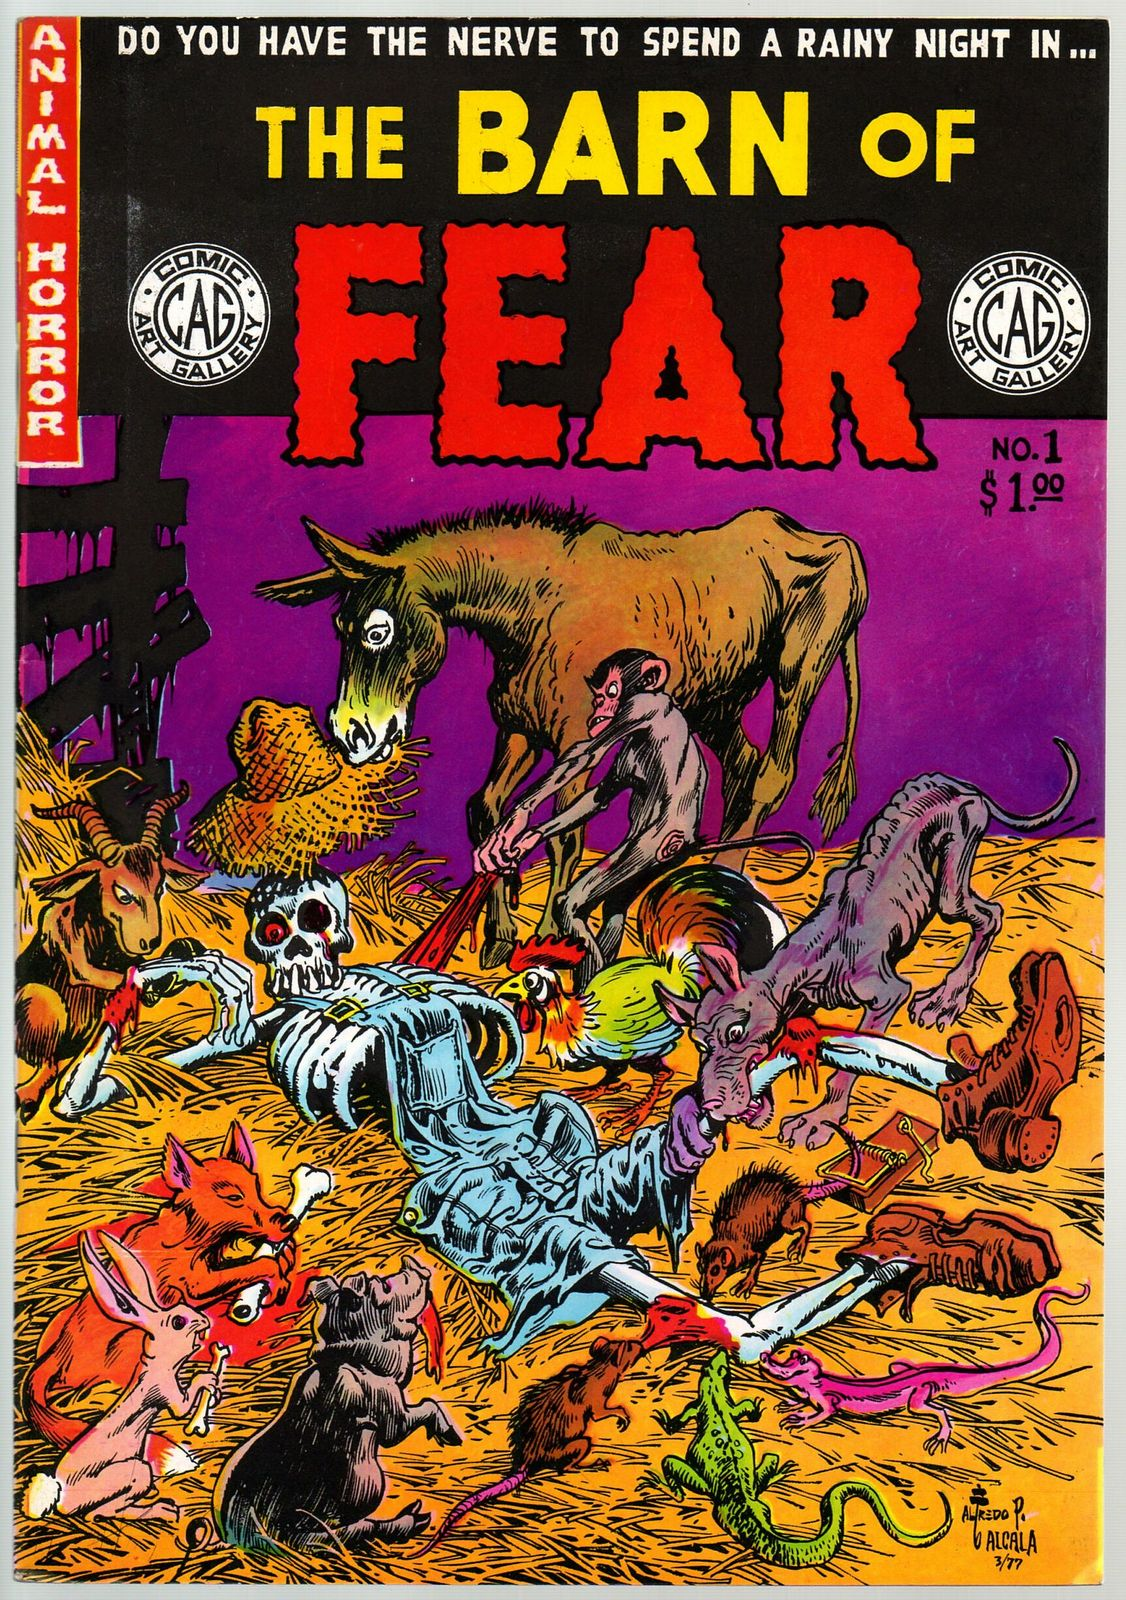 Barn Of Fear 1978 underground comix, Alfredo Alcala, Larry Todd,Scott Shaw more